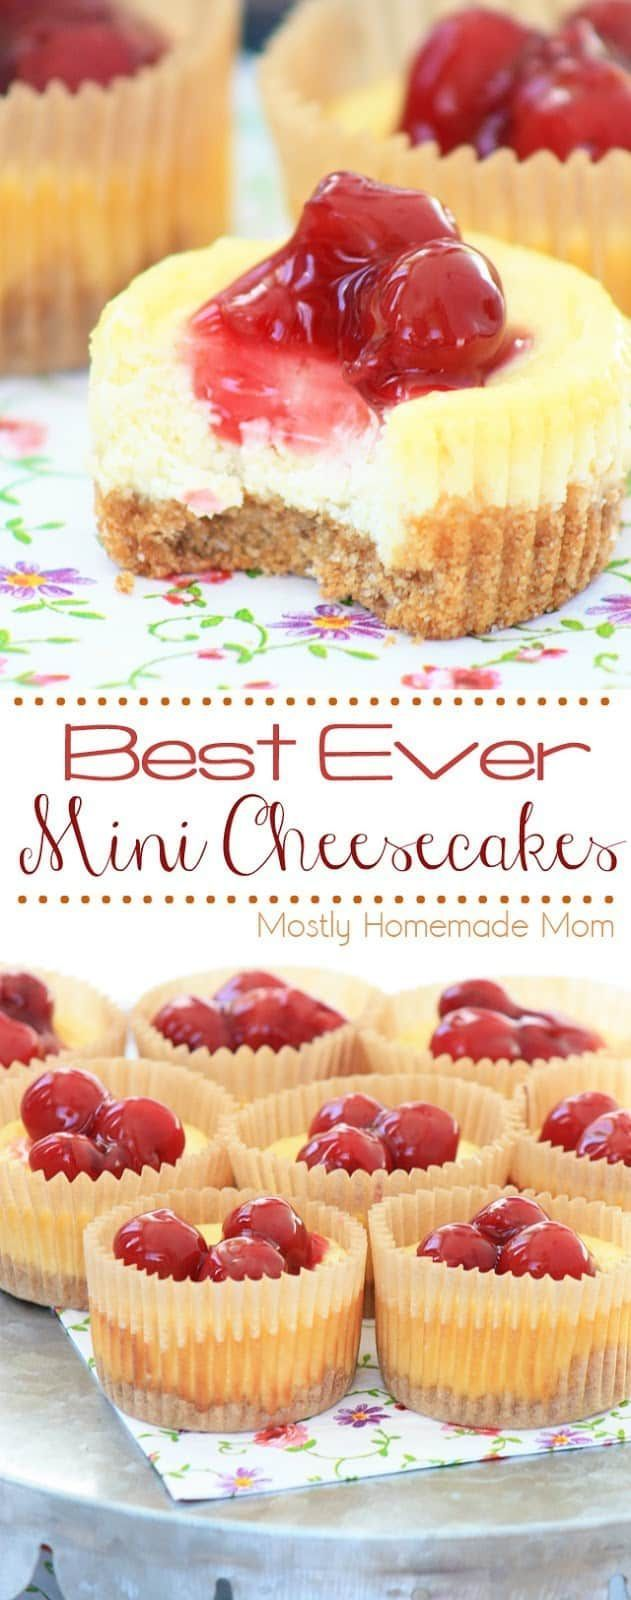 Best Ever Mini Cheesecakes - Mini Refrigerator - Ideas of Mini Refrigerator #minirefrigerator - THE BEST recipe ever for Mini Cheesecakes! Cheesecake filling with graham cracker crust made in cupcake tins. My kids beg me to make these again and again! #minicheesecakes #cheesecake #recipe #dessert #summersouthernfood